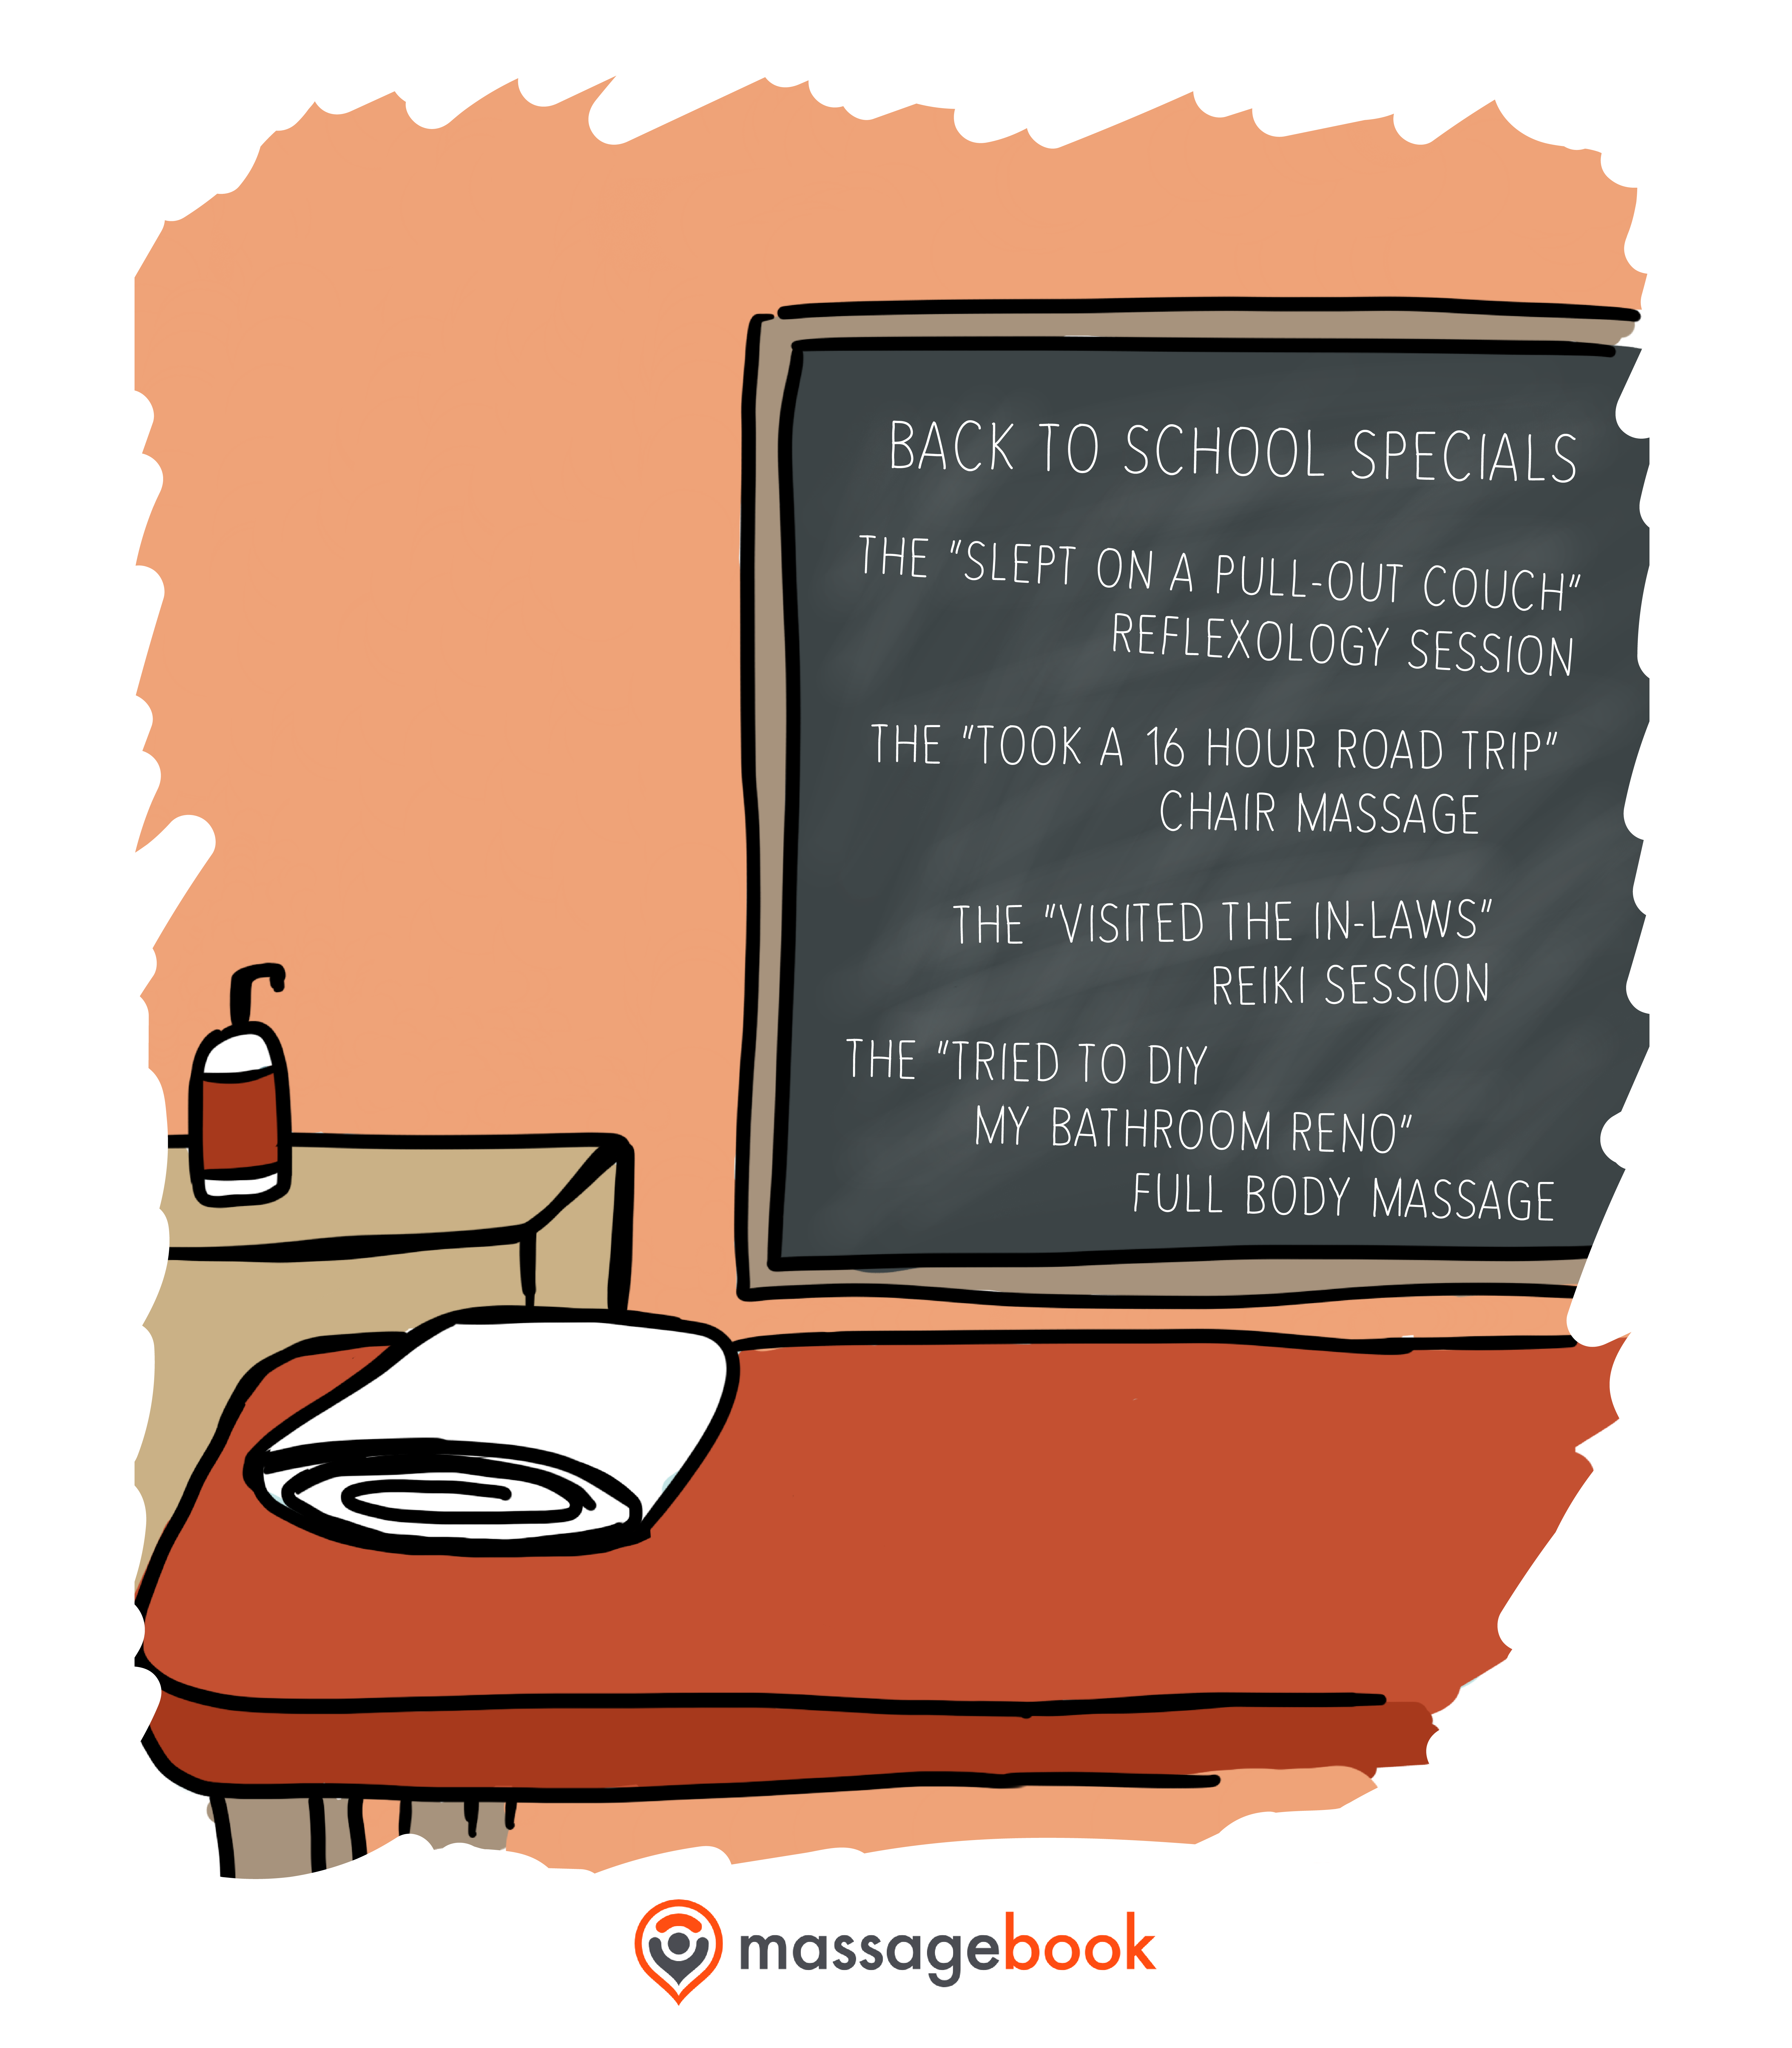 back_to_school_specials.png